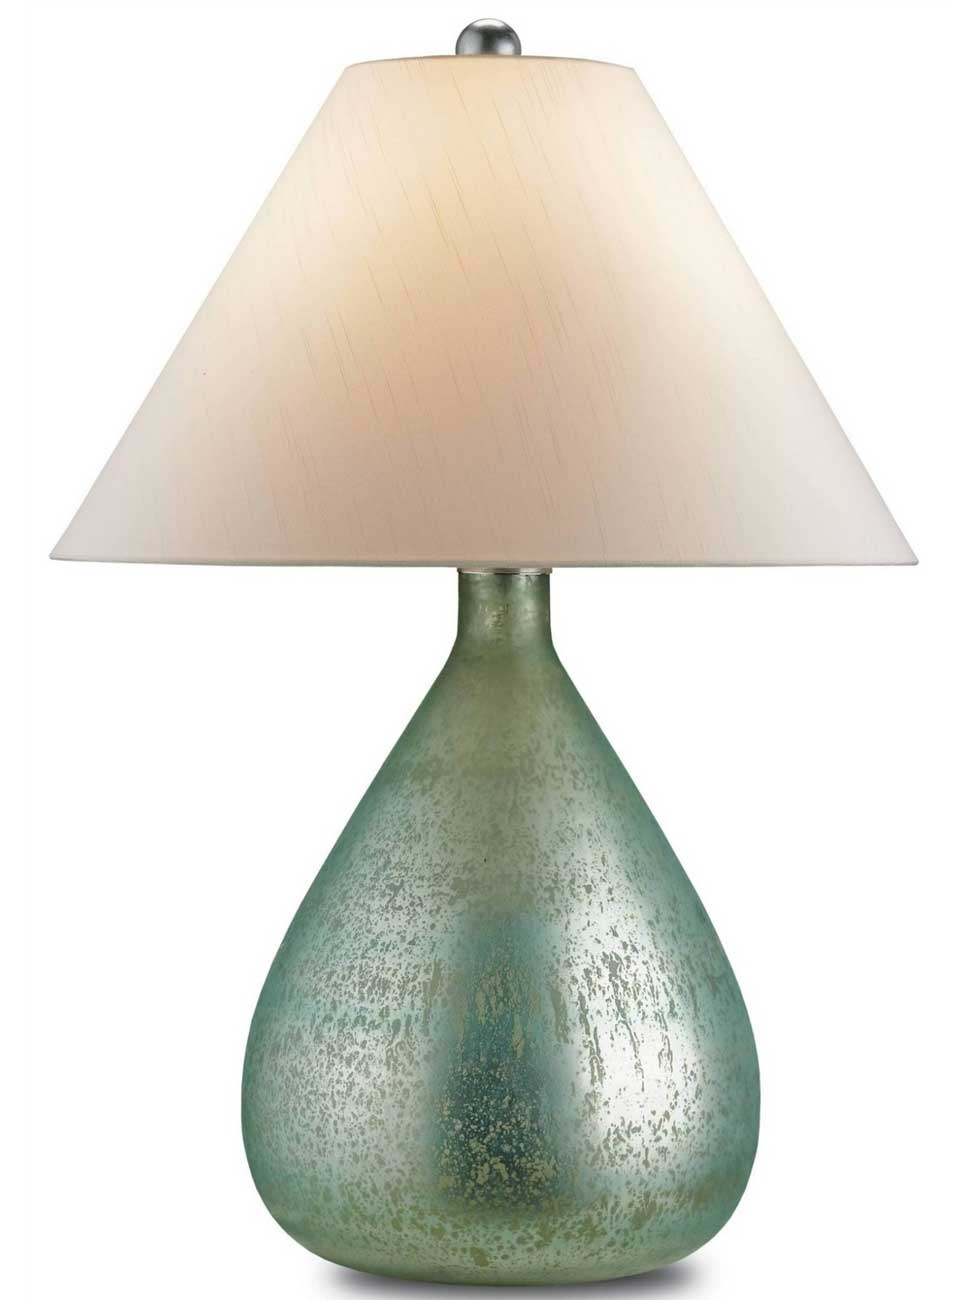 aqua glass table lamp photo - 1